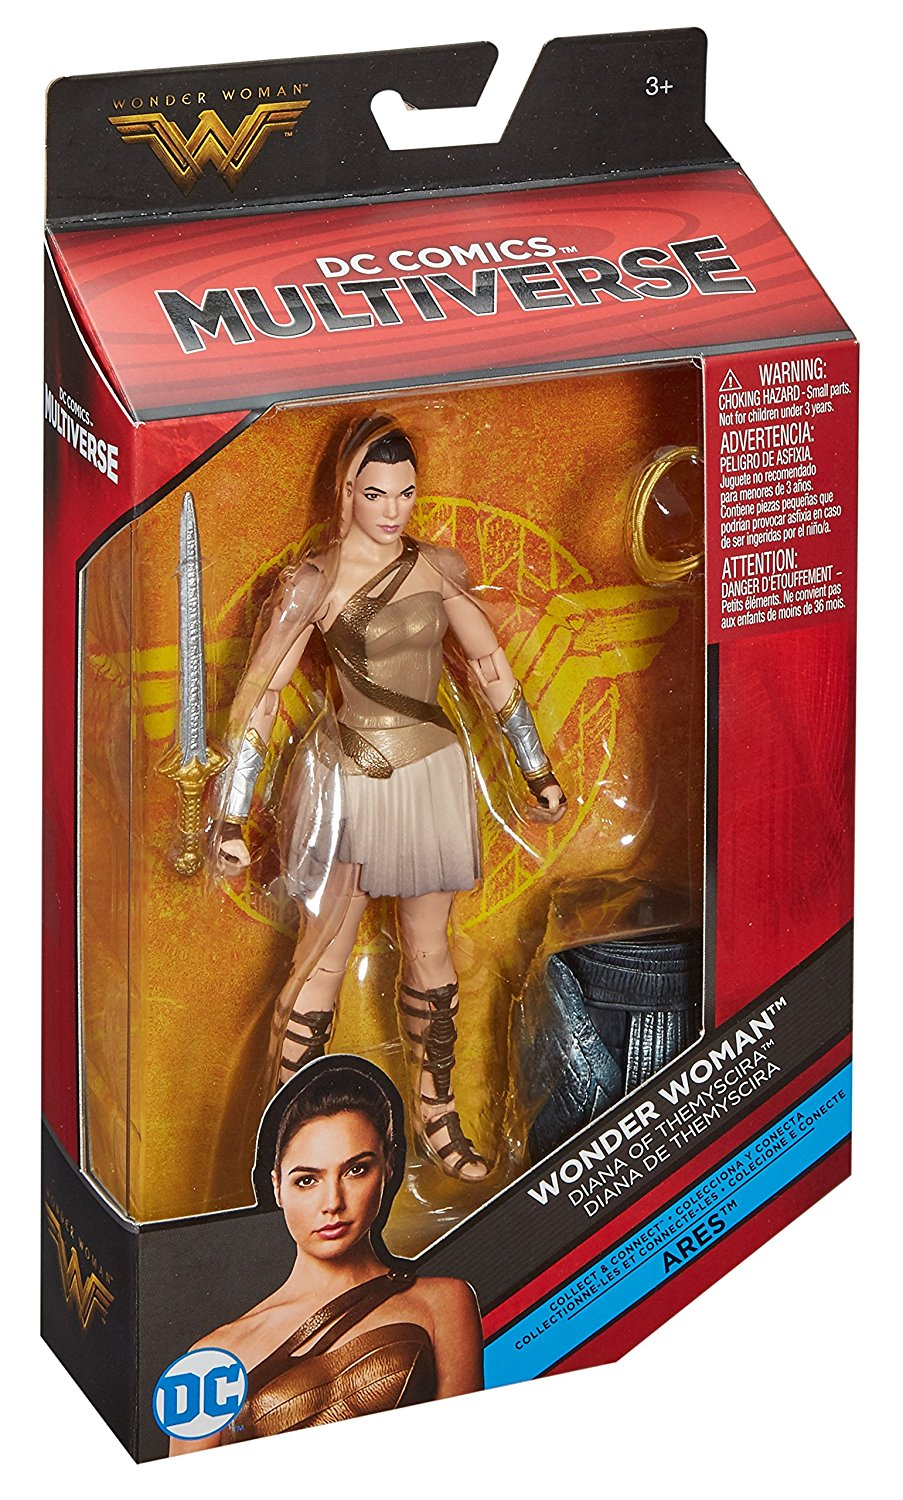 Original Garage Kit 6'' Figurine DC Comics Multiverse Wonder Woman Princess Diana Toy Collectible Action Figure Doll Model Gifts dc super hero girls wonder woman 9 training pvc action figure doll collectible model toy christmas gifts a162